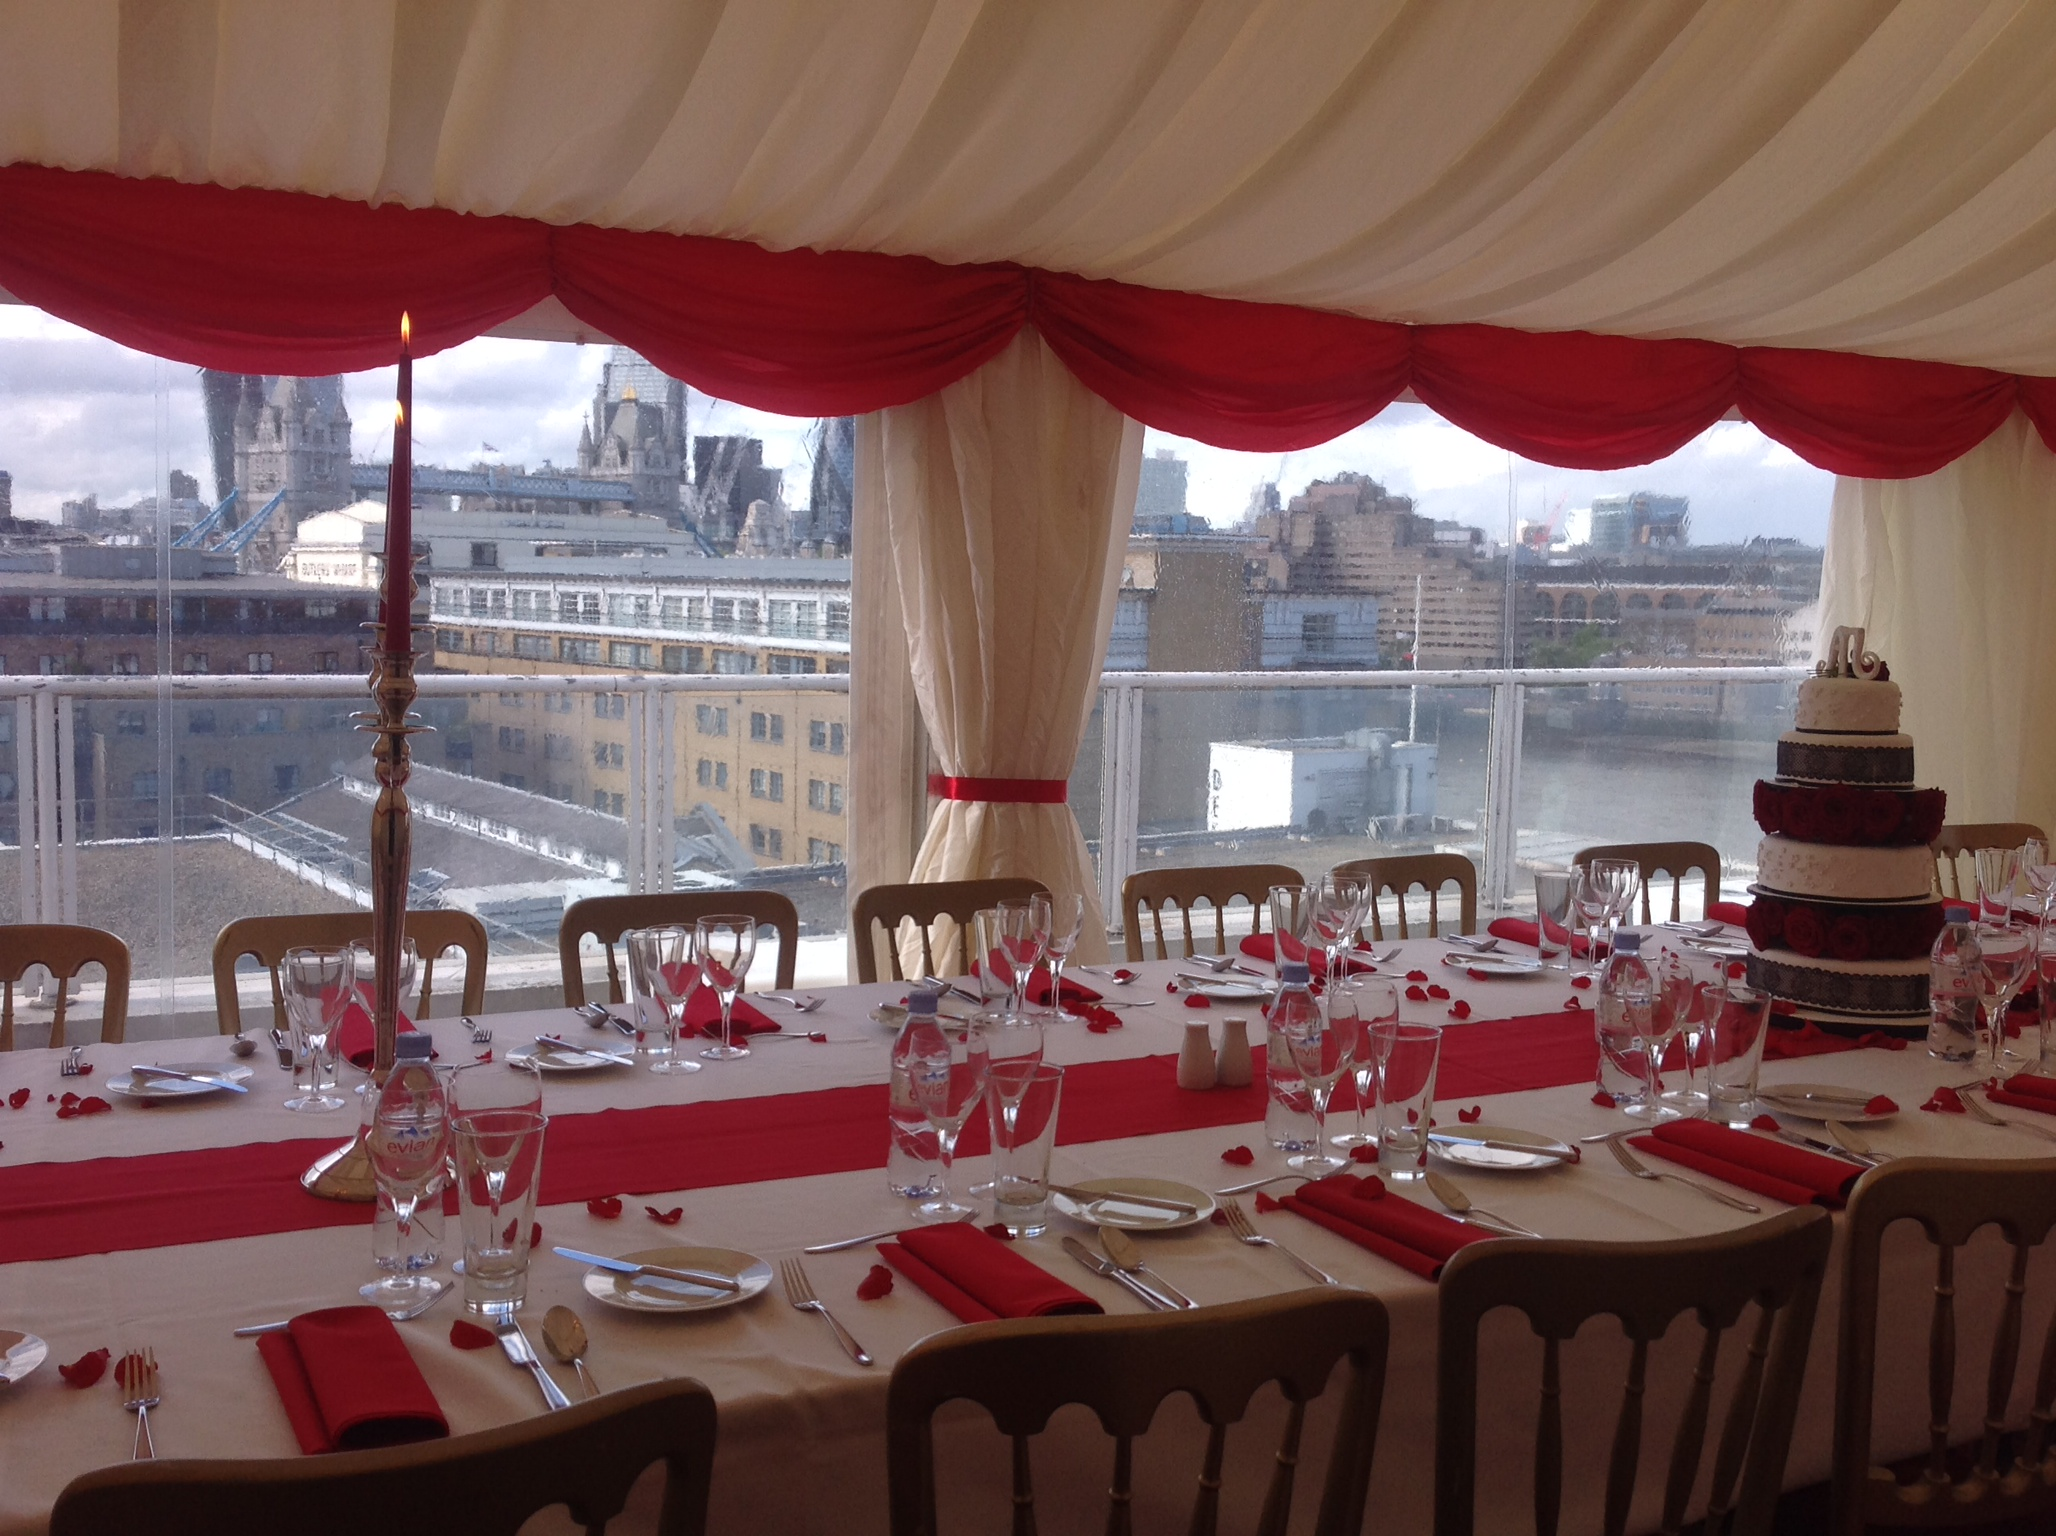 Marquee for event at Shad Thames on the Eighth Floor